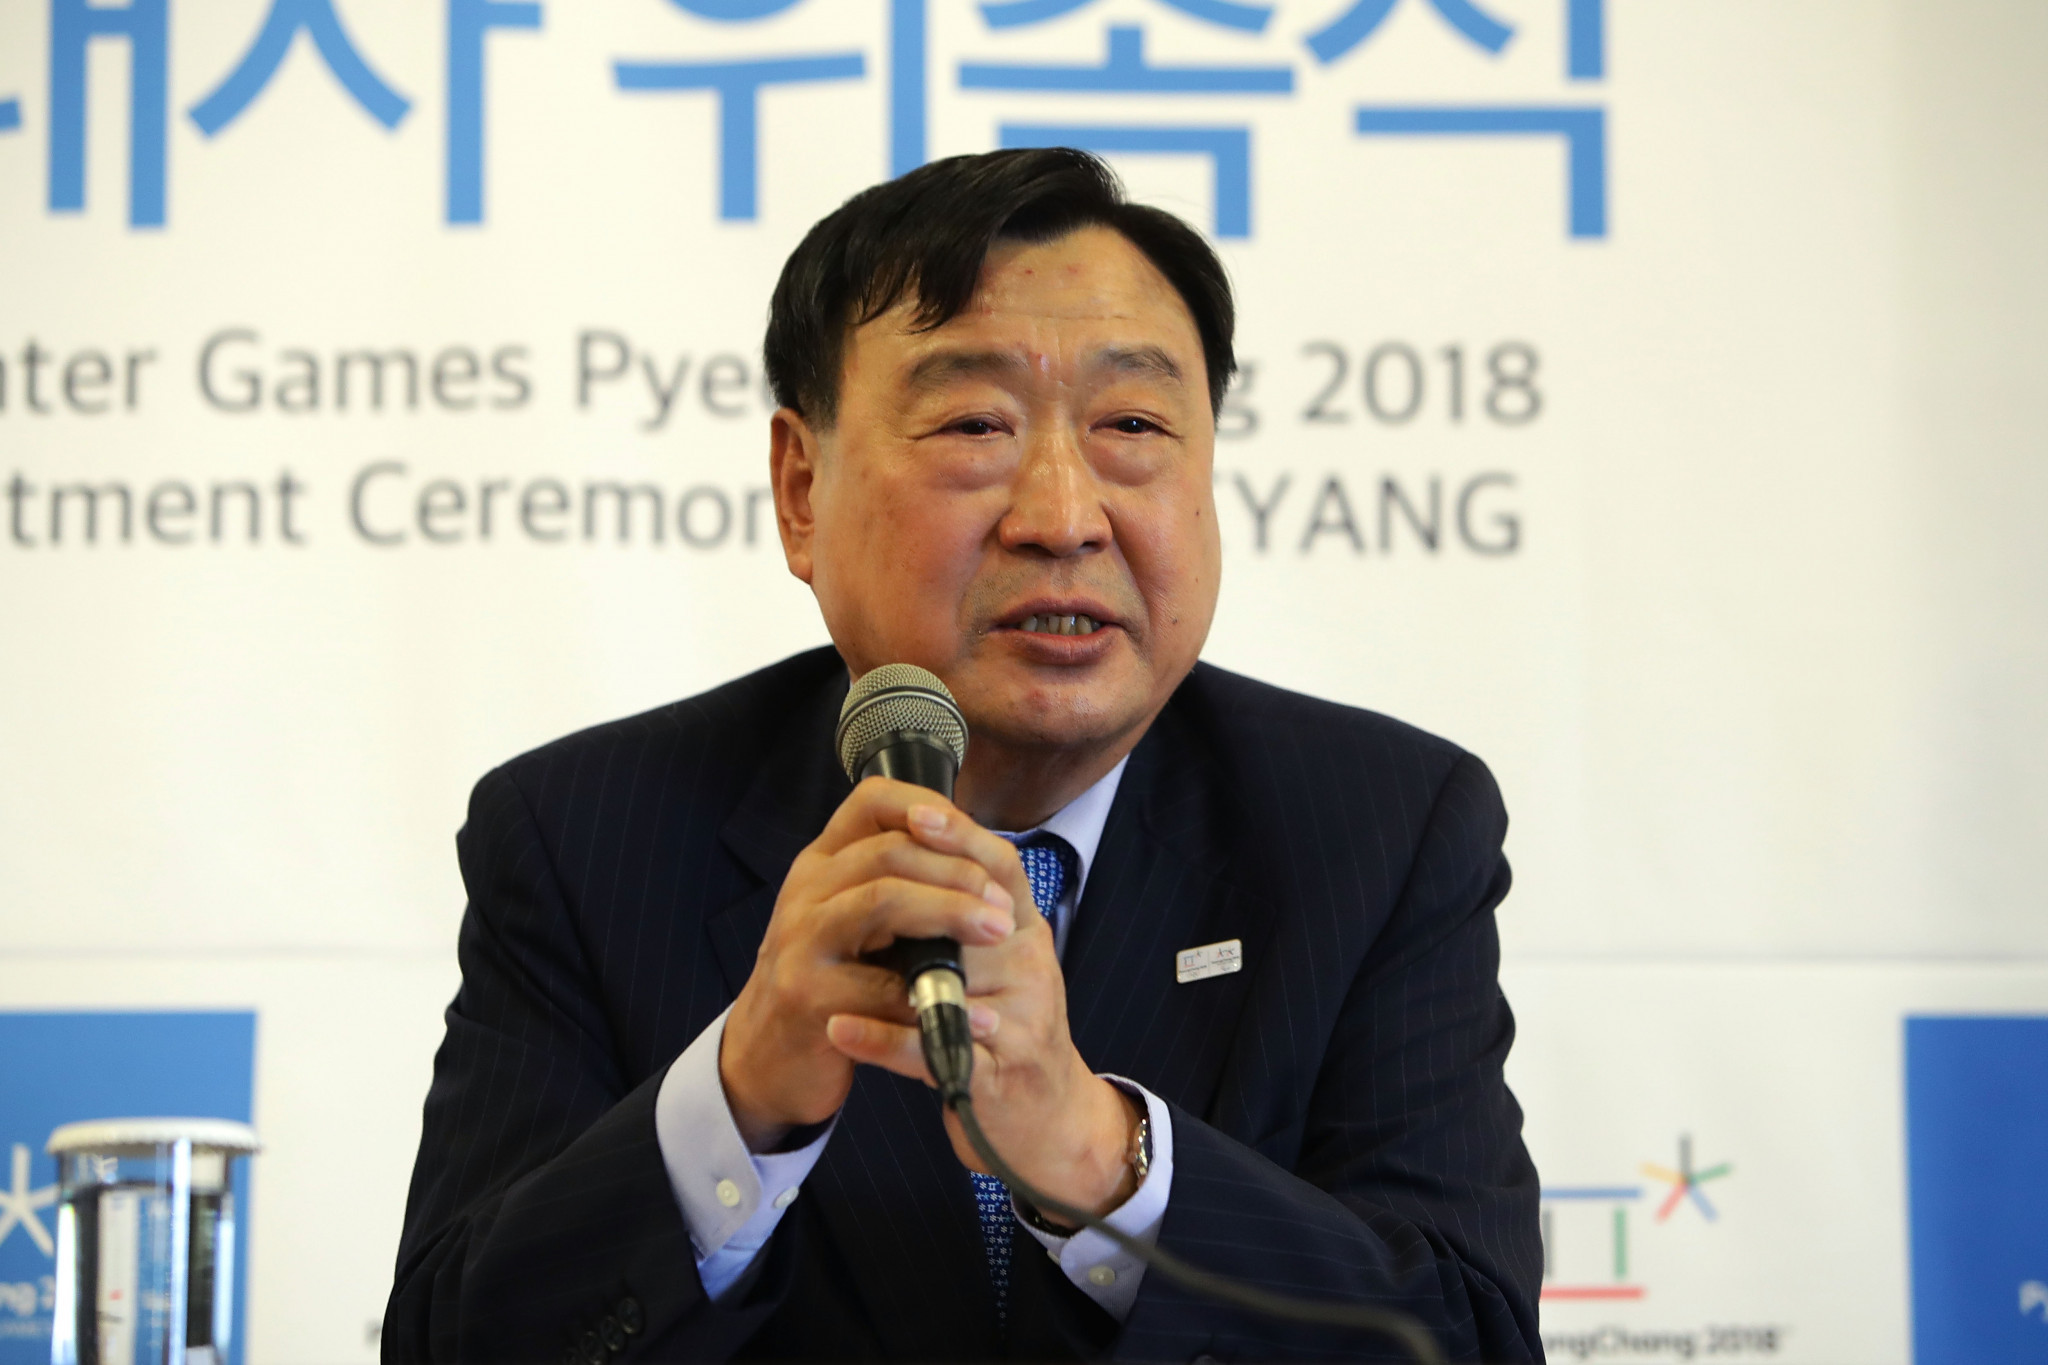 Lee Hee-beom insists problems at Samsung will not affect the Olympic preparations ©Getty Images